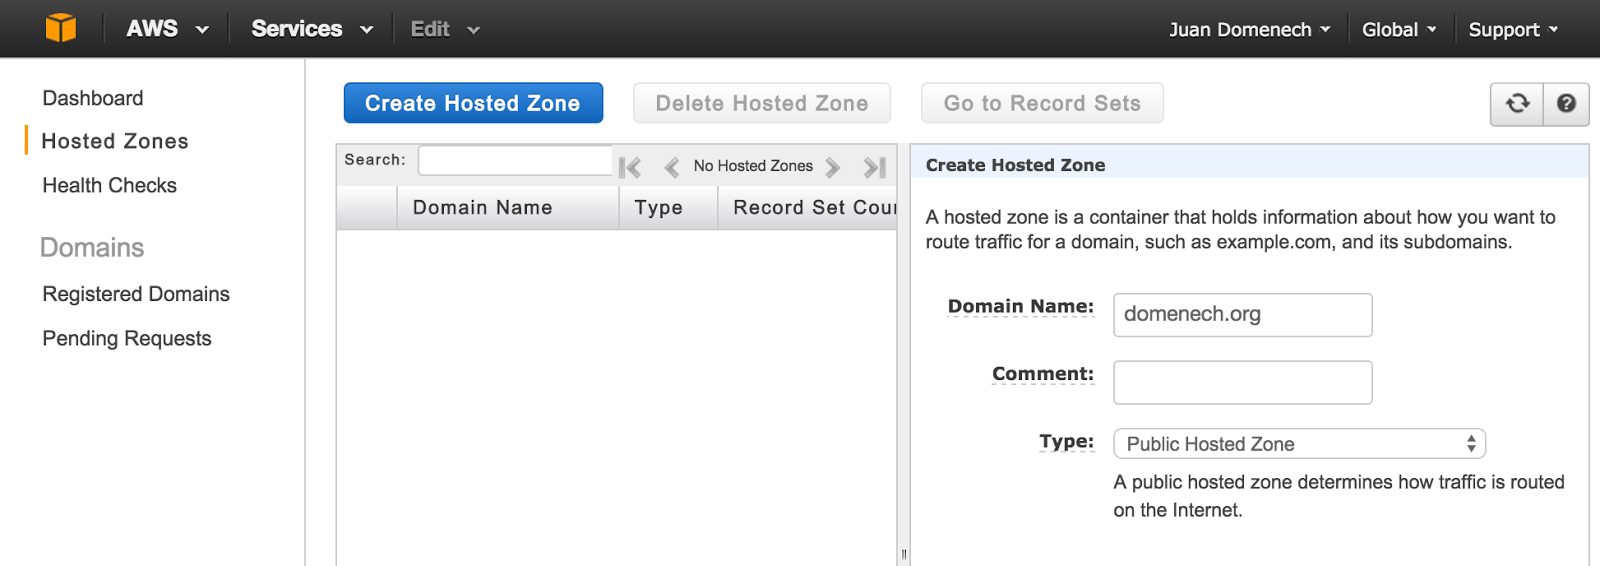 blog-domenech-org-transfer-your-dns-configuration-to-aws-route-53-create-zone